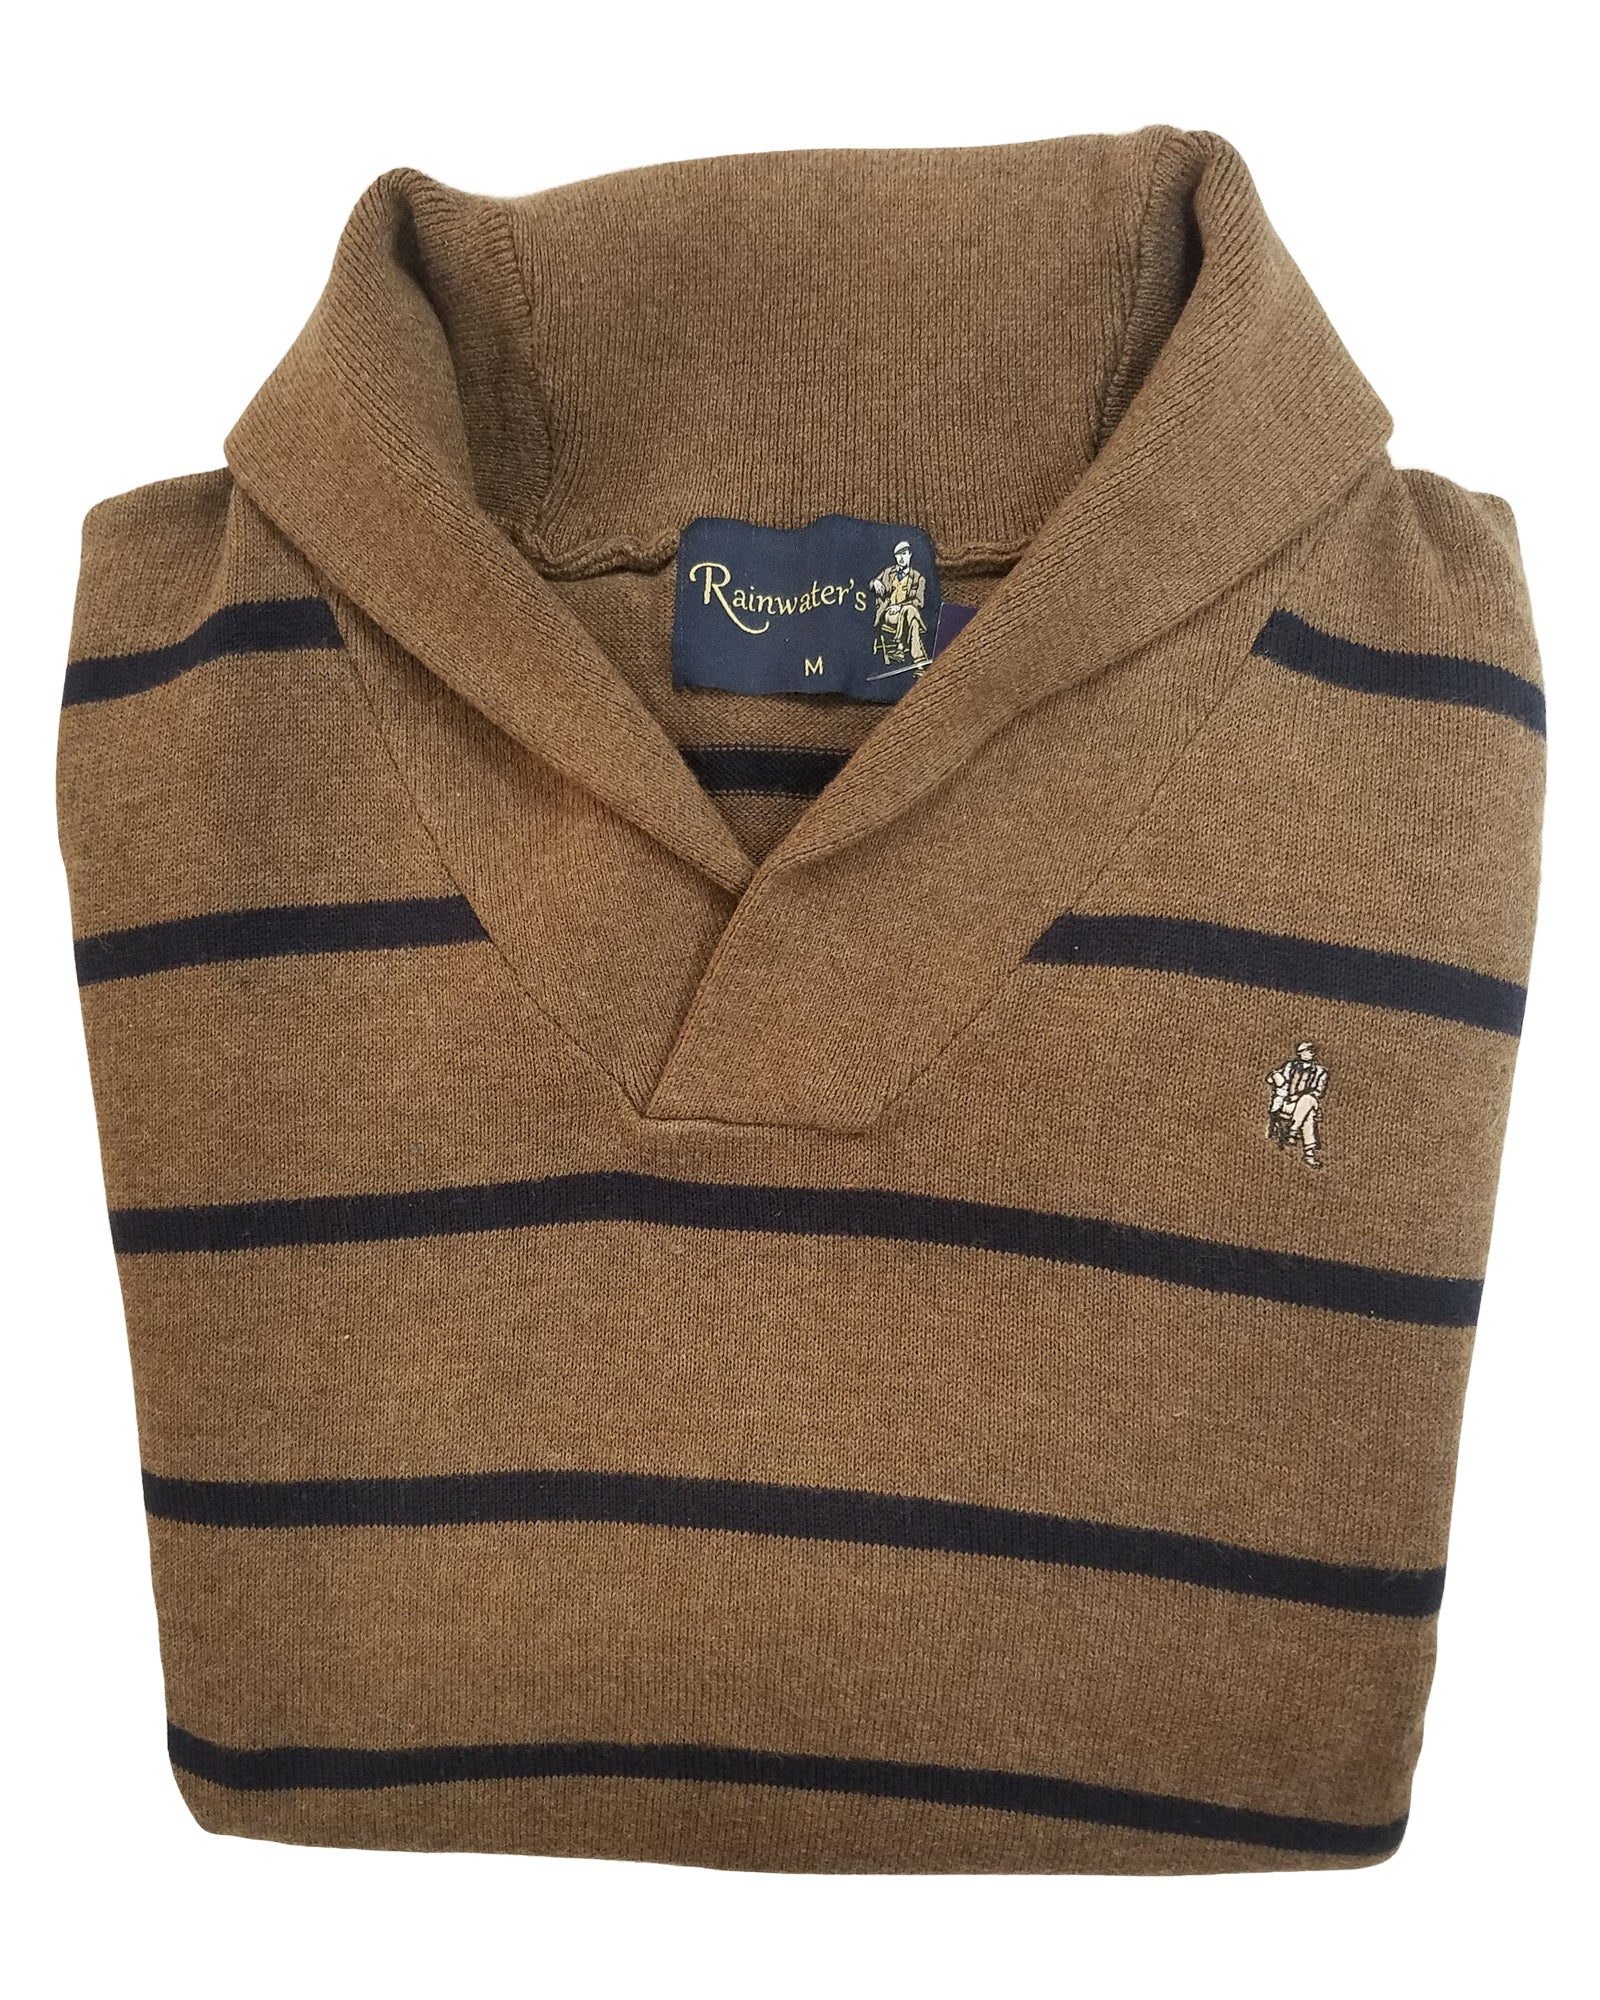 Shawl Collar Sweater in Brown With Navy Stripes Cotton Blend